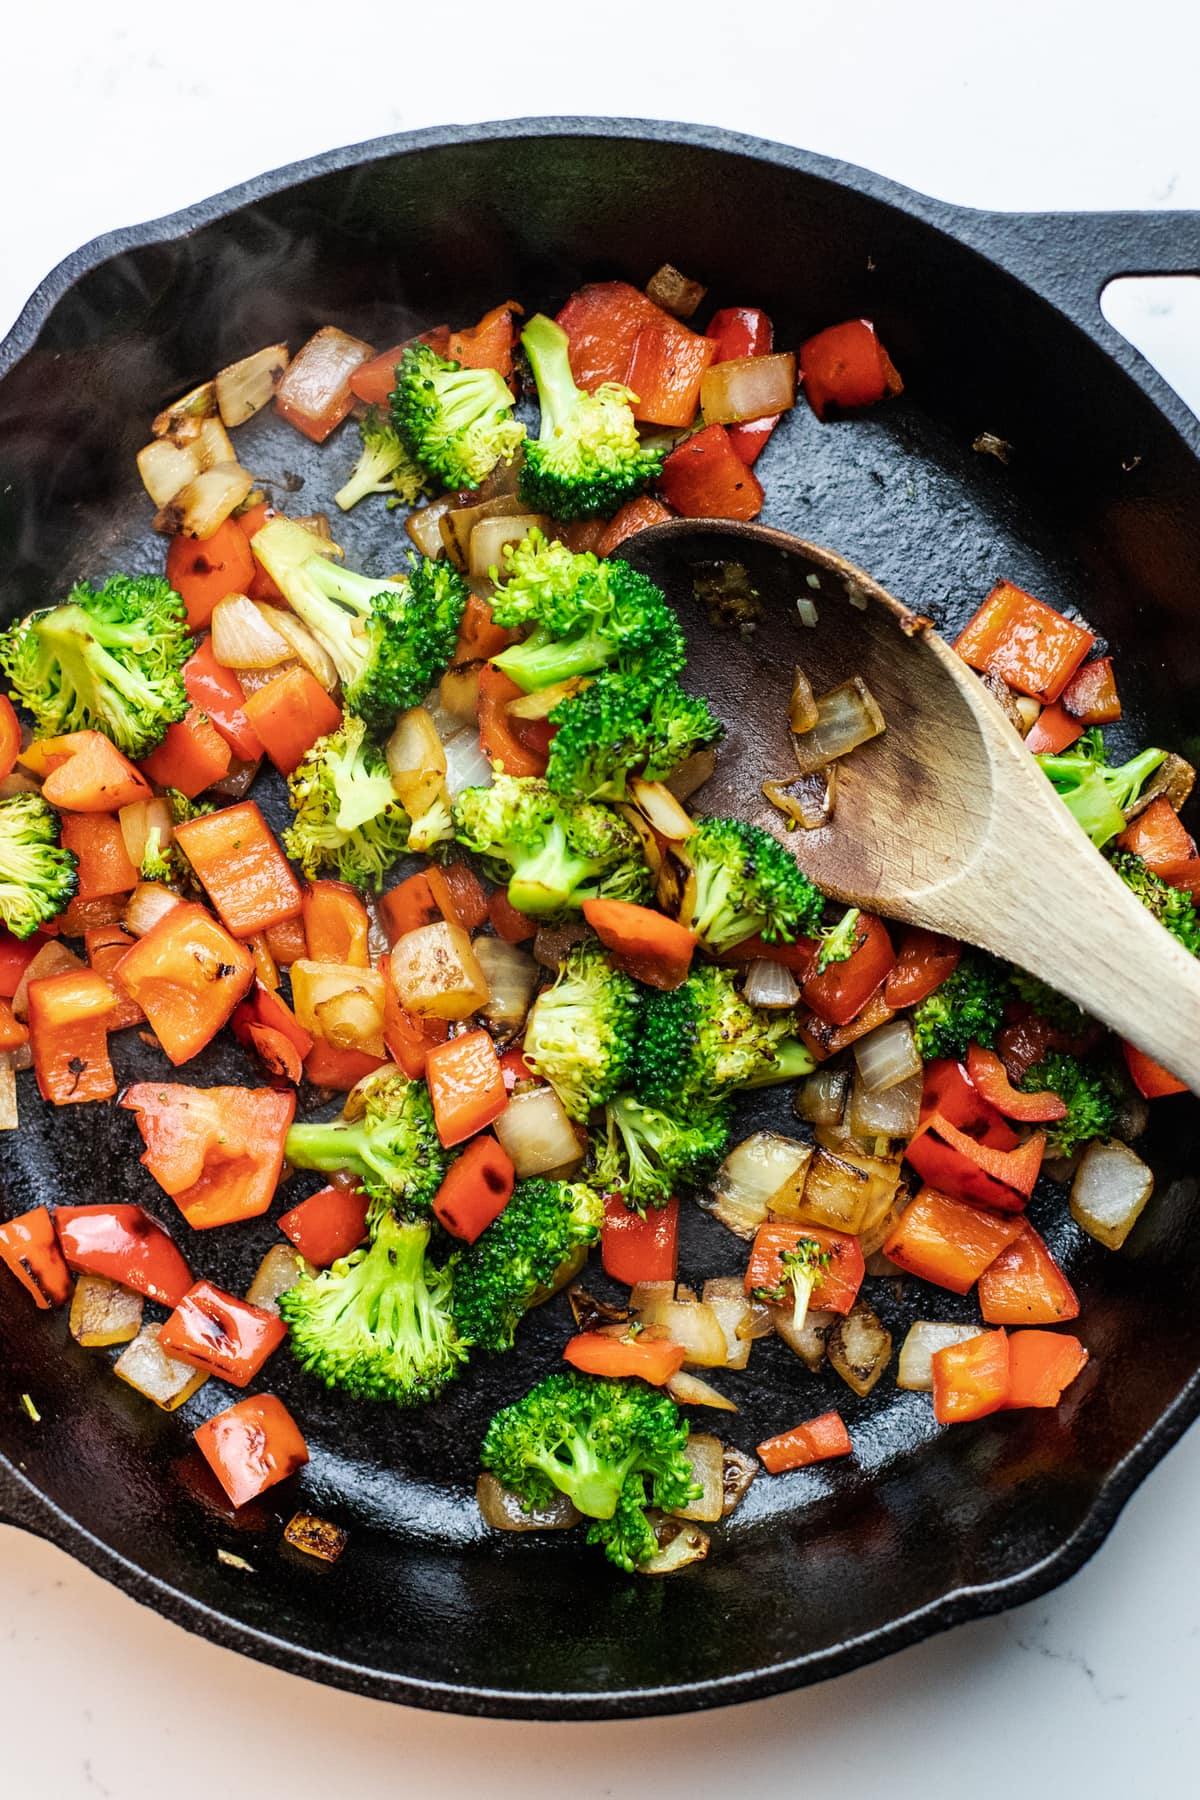 vegetables sauteed in a black skillet with a wooden spoon.